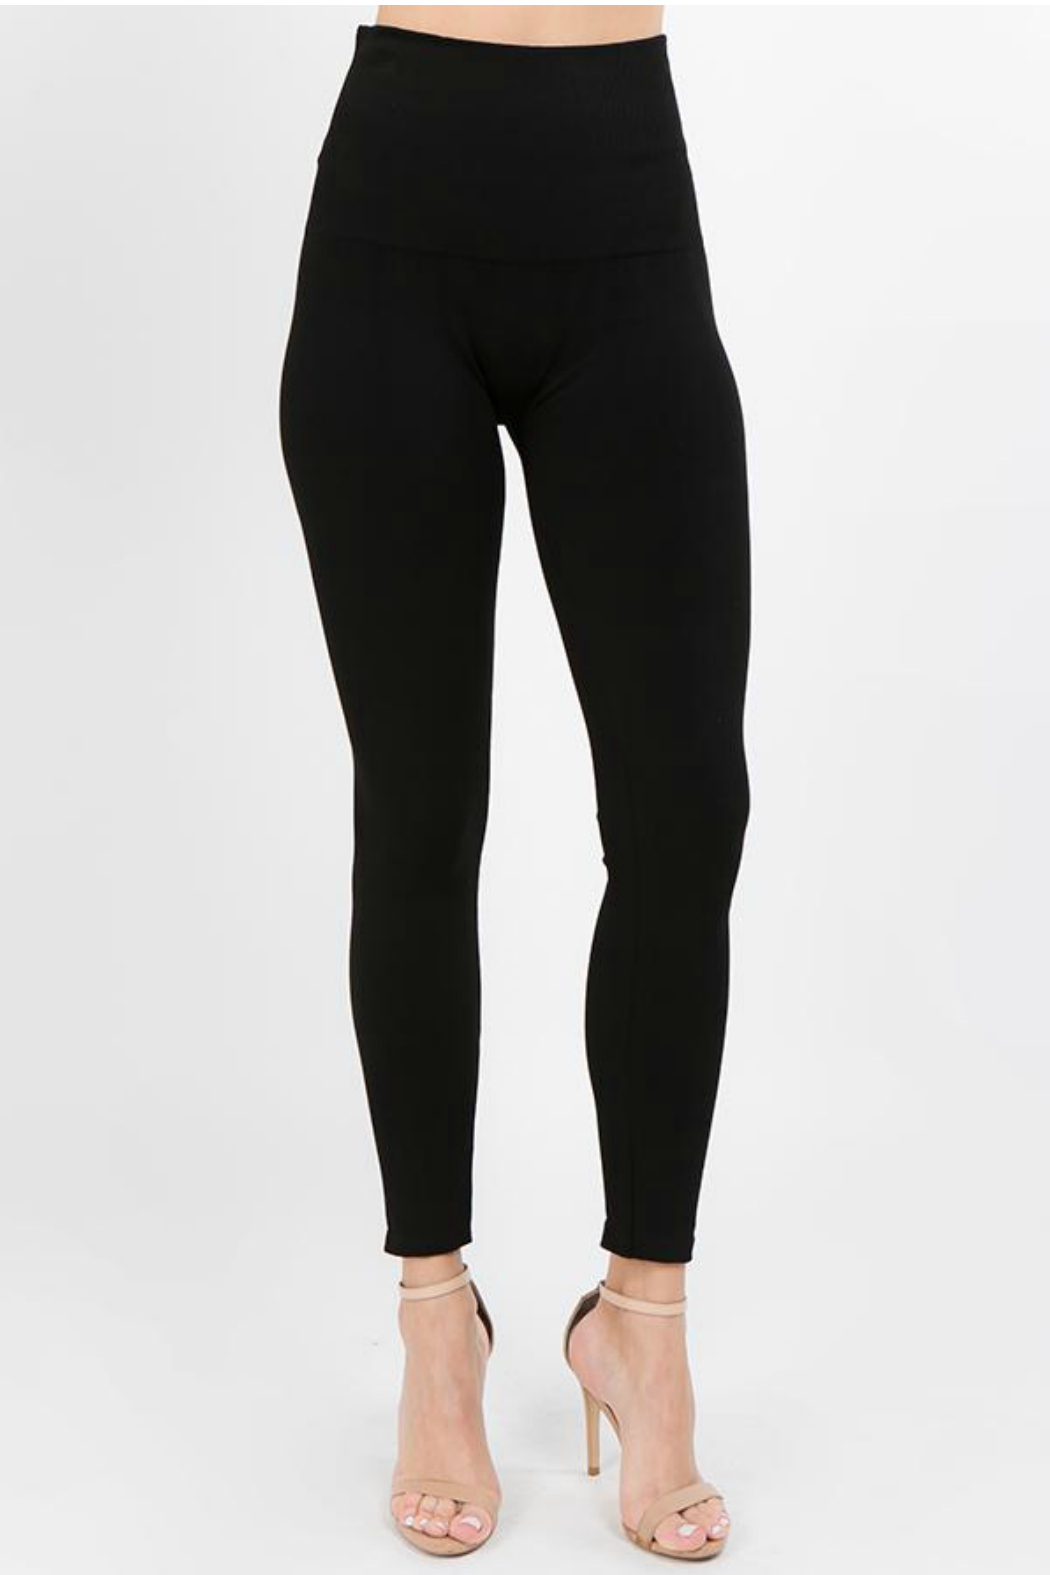 M.Rena High waist full length legging - Front Cropped Image